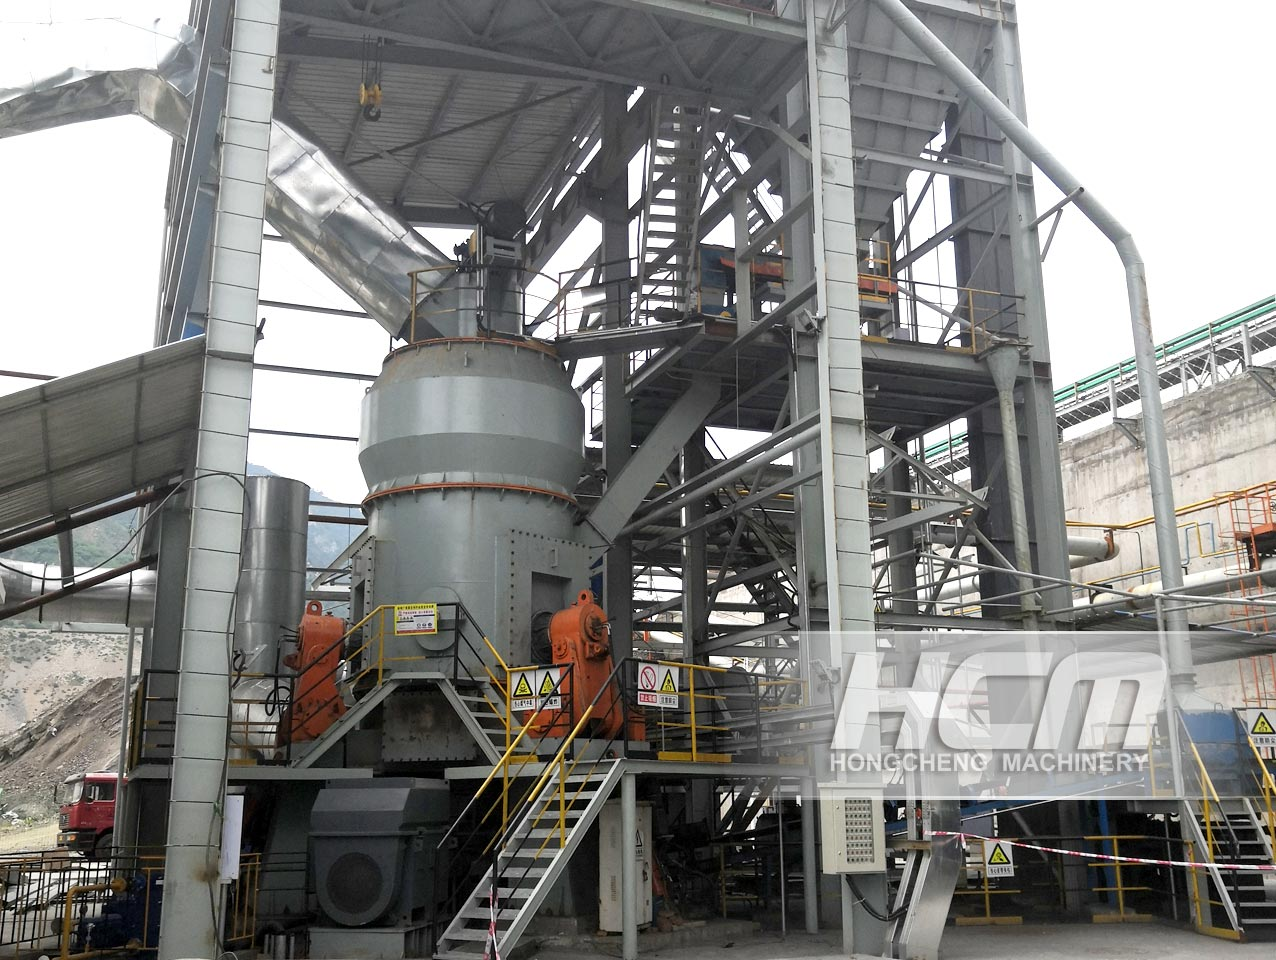 BUY ADVANCED TITANIUM SLAG GRINDING VERTICAL RAYMOND MILL BY EXPERIENCED MANUFACTURERS